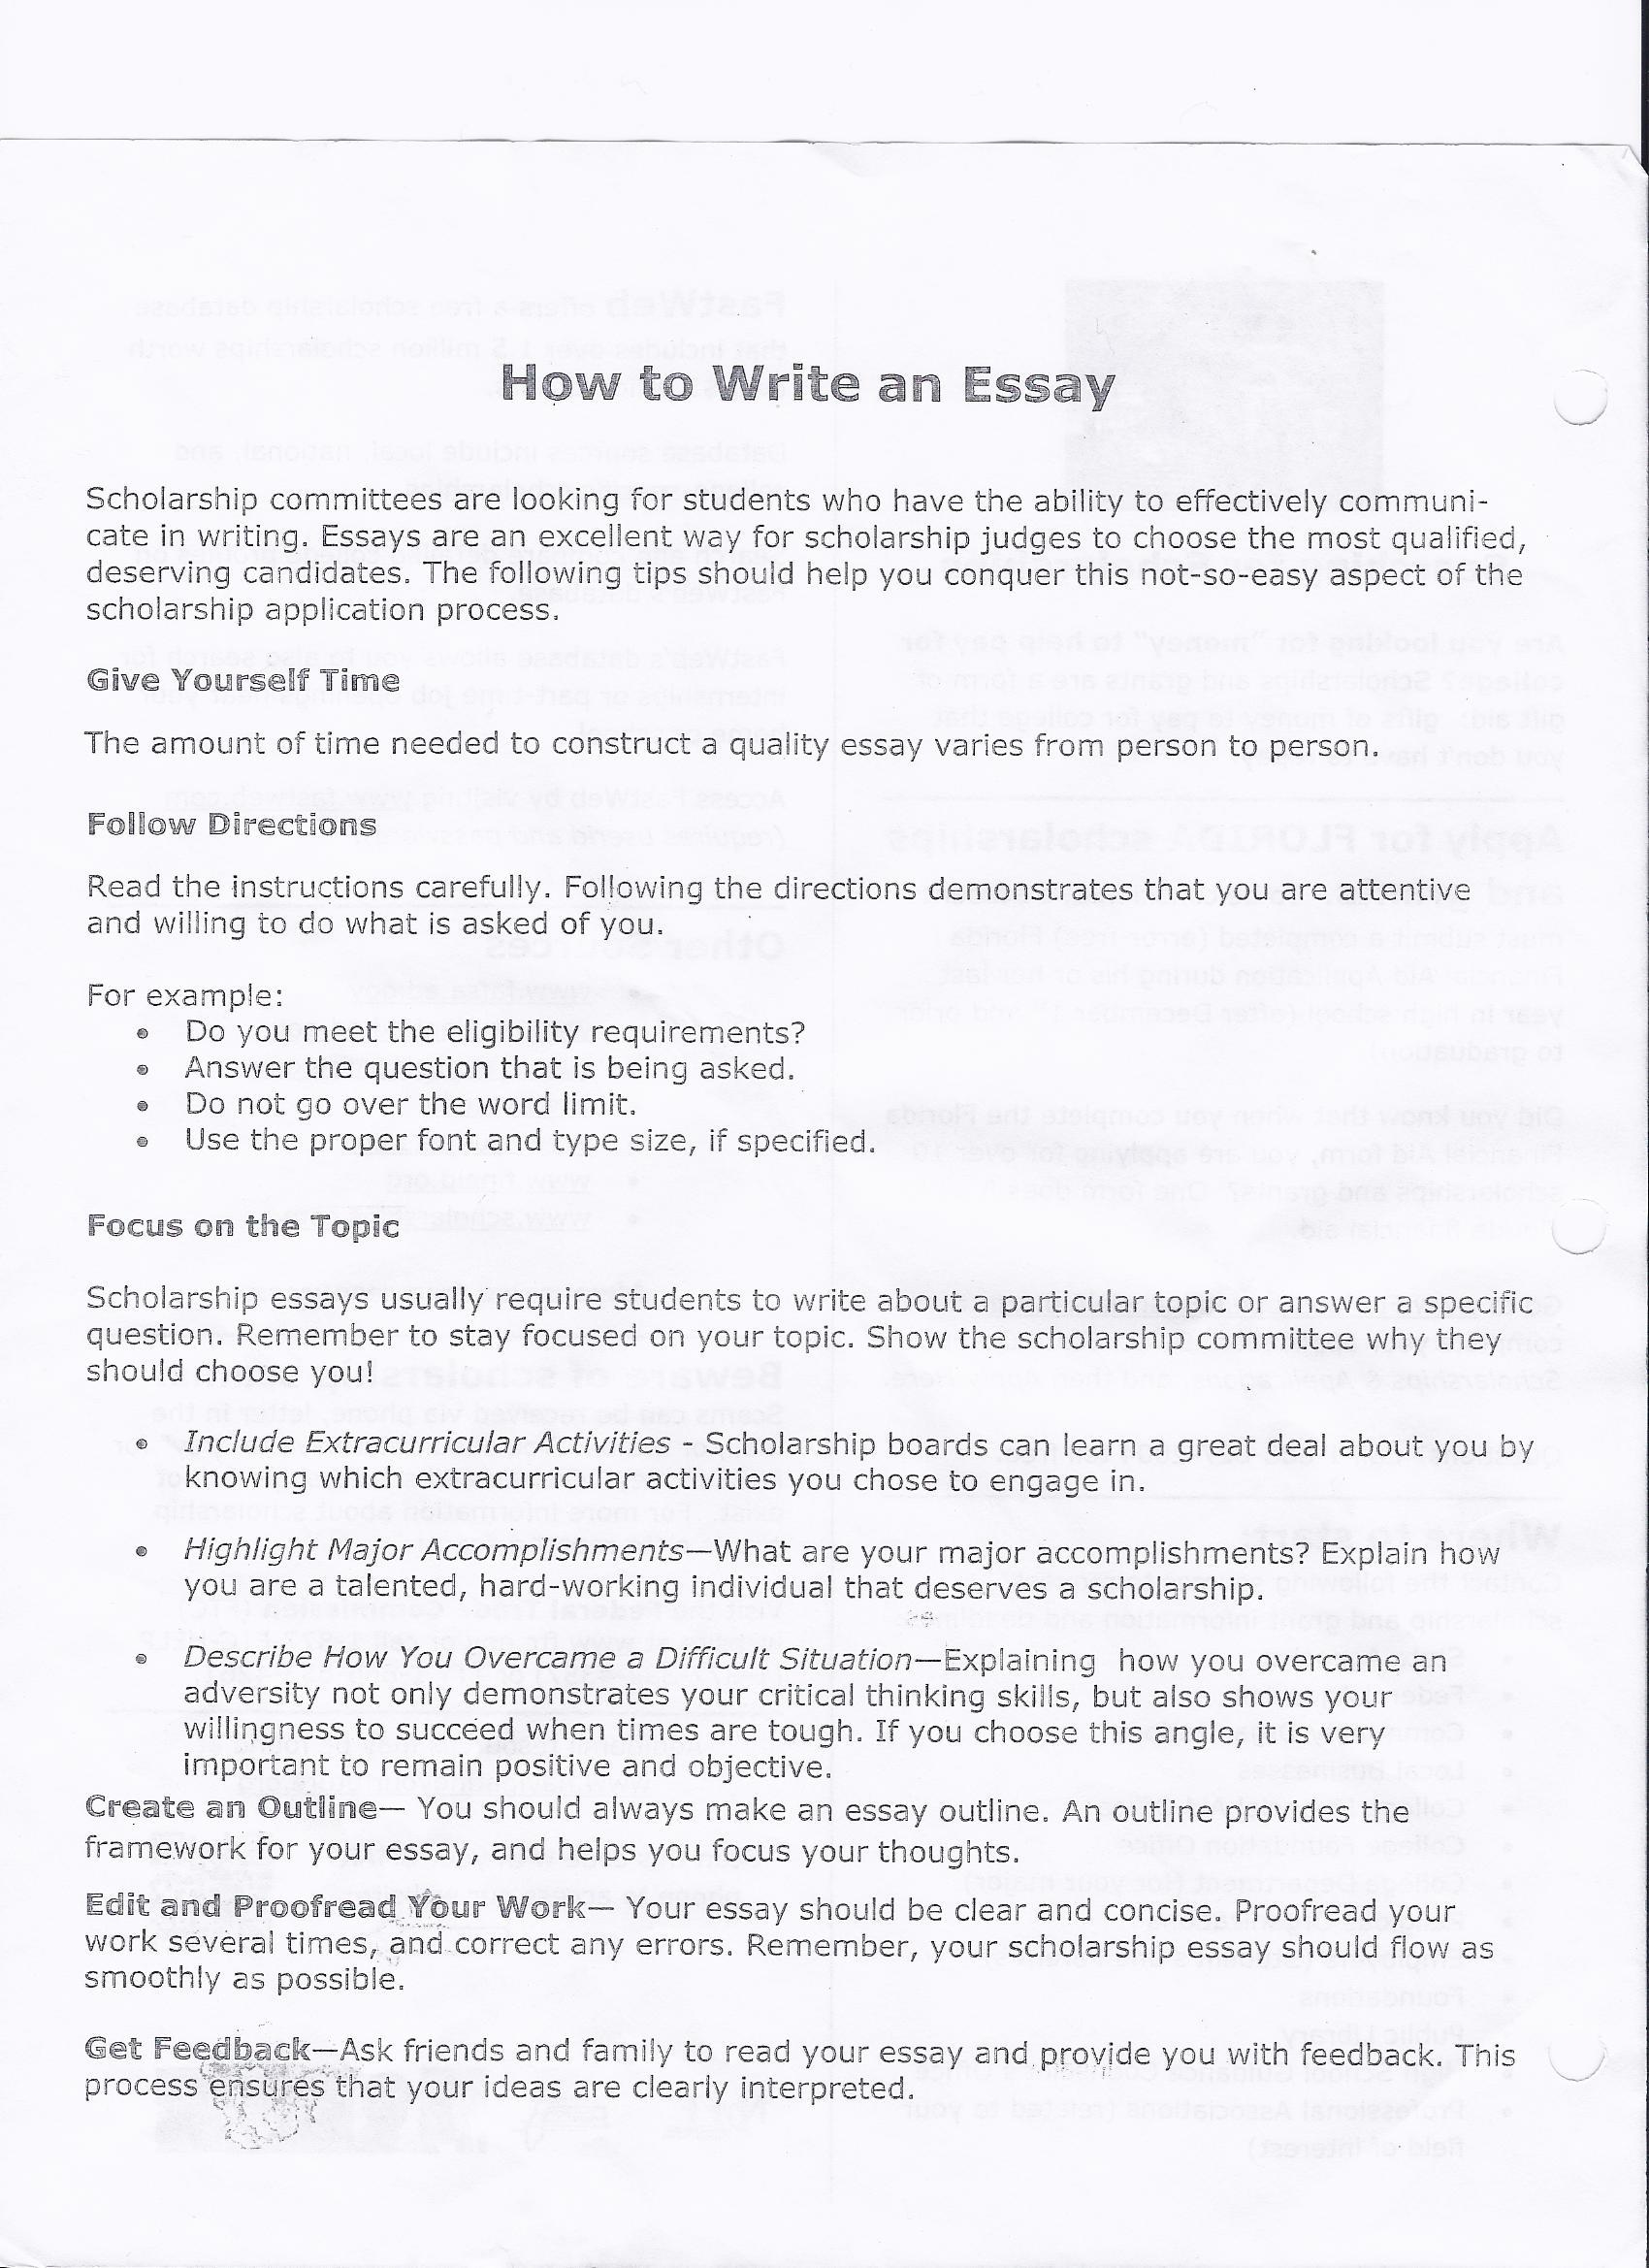 Films And Society Essays For Scholarships